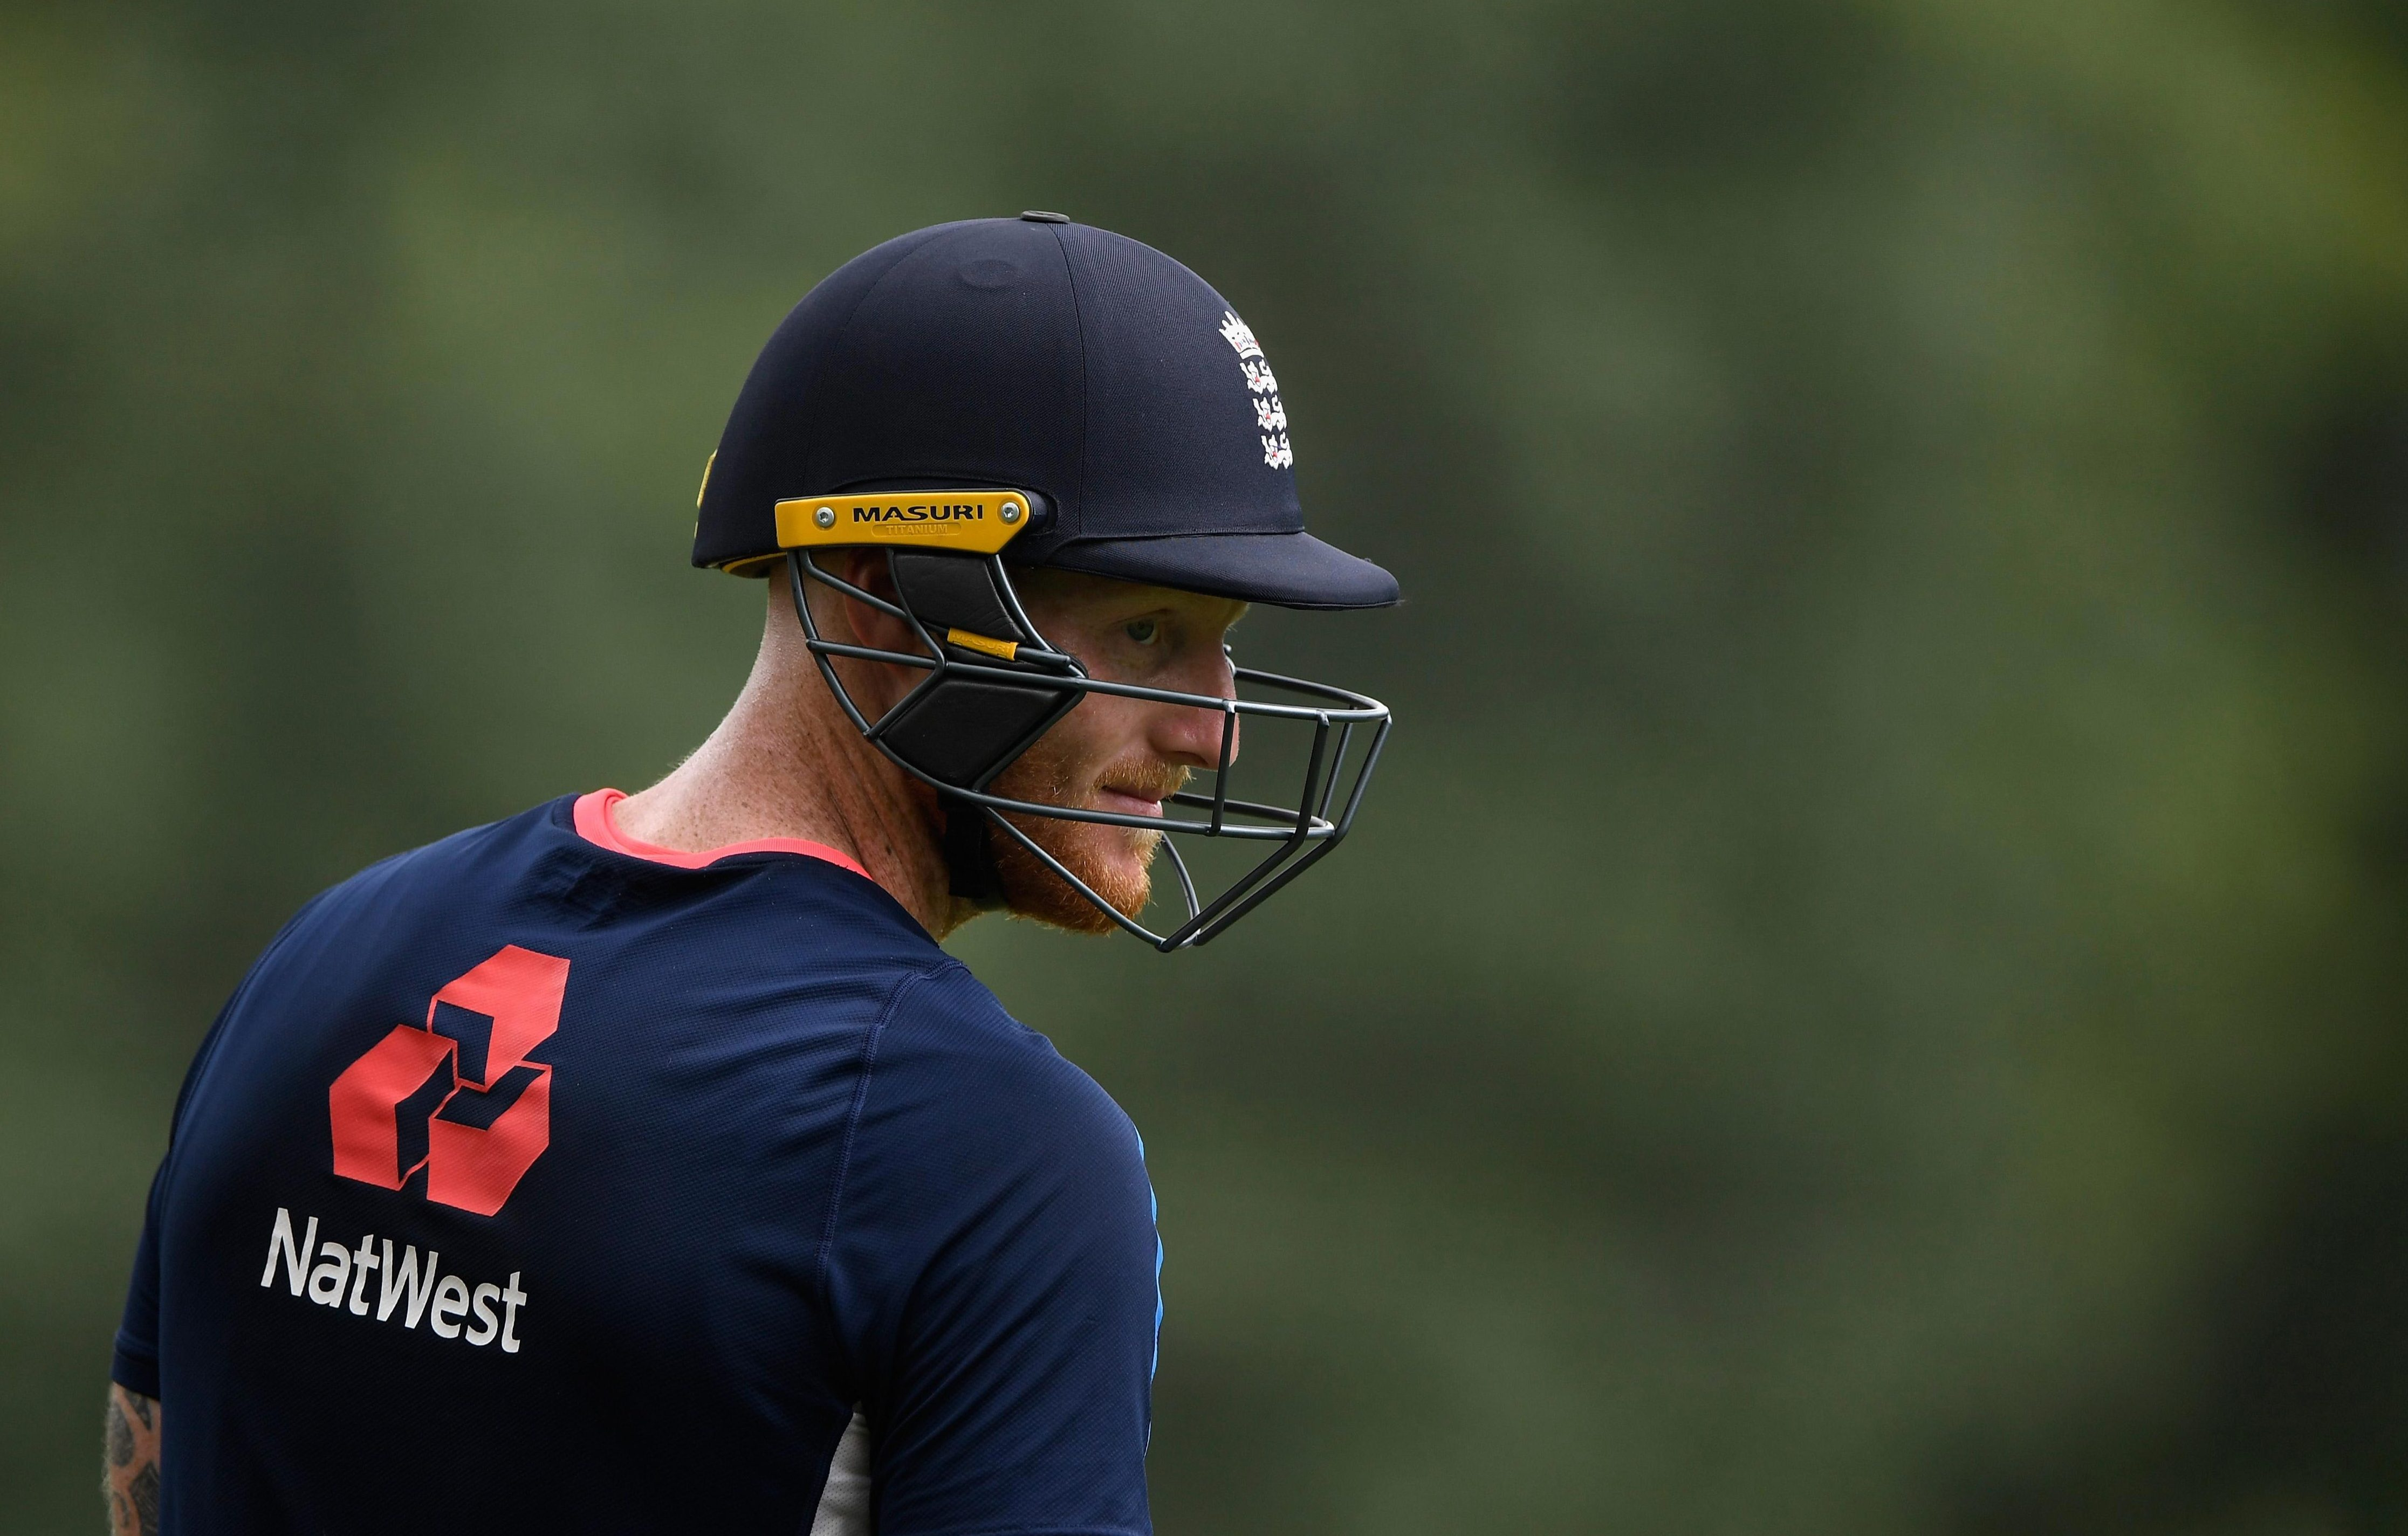 The all-rounder bowled an eight-over spell in the nets on Thursday